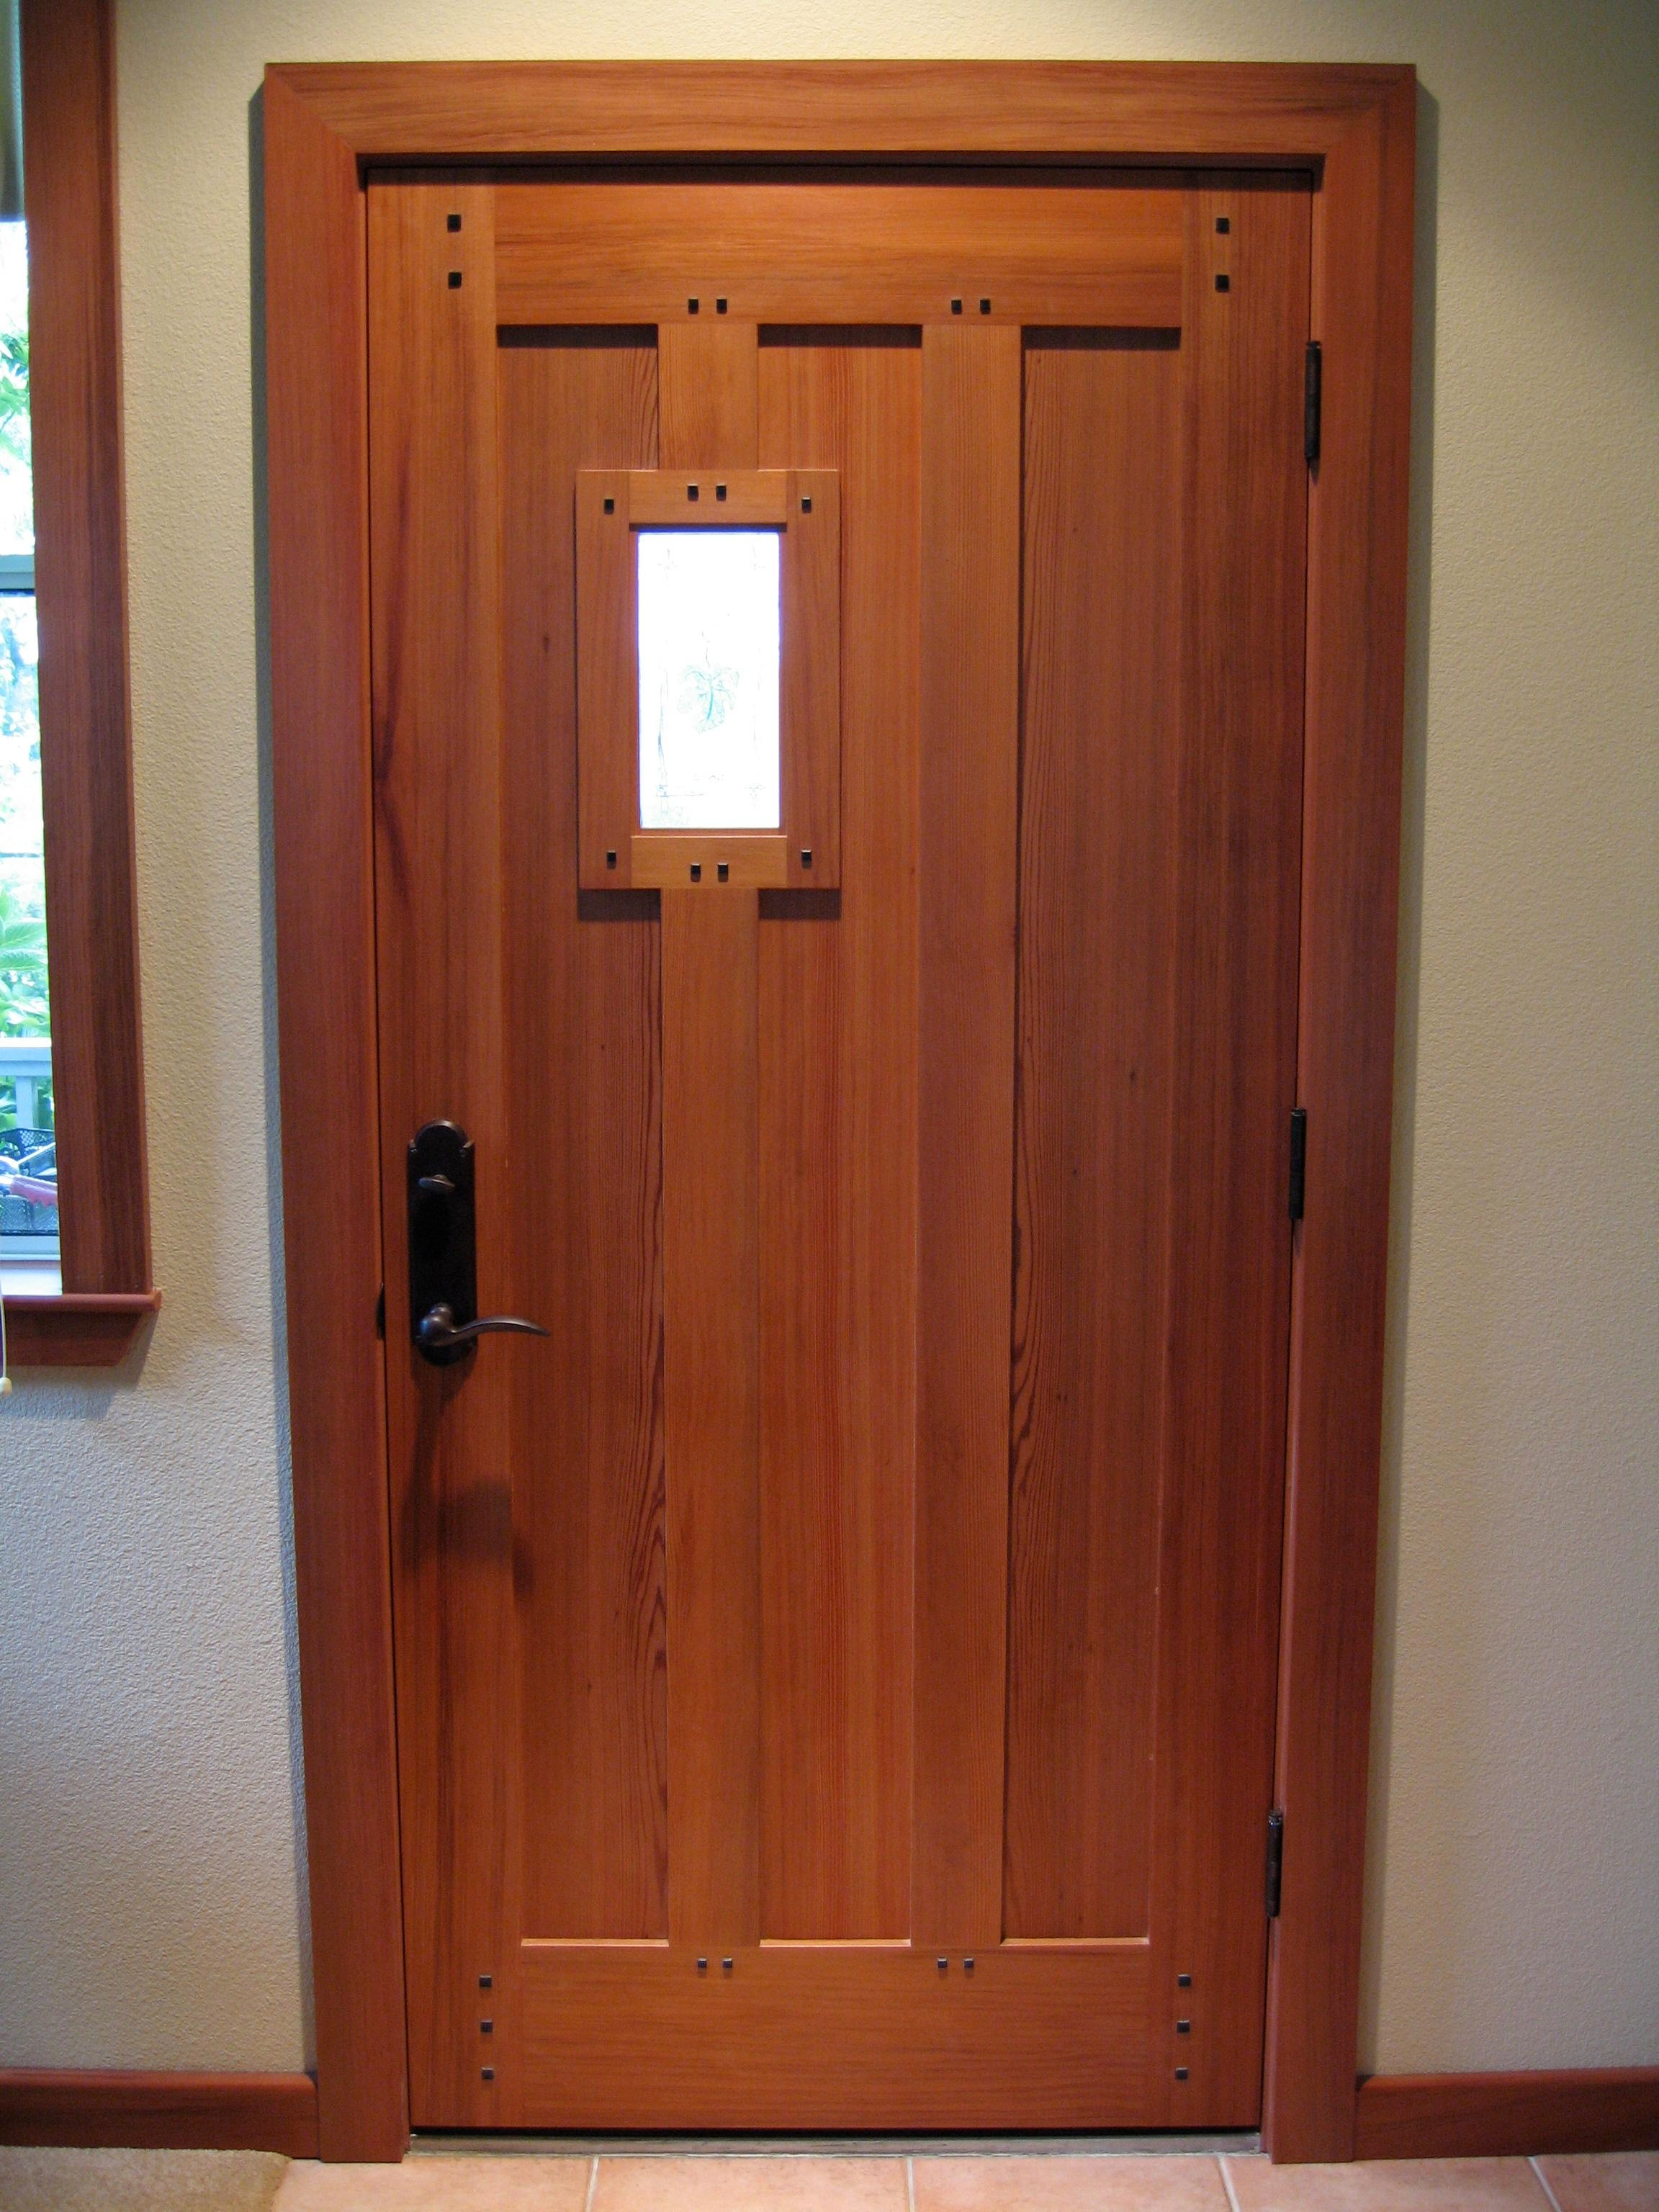 Custom salvaged Redwood mortise & tenon Ebony pegged craftsman door designed & handcrafted by Philip Snyder of PS Woodworking adds elegance and style to the entrance of your home.